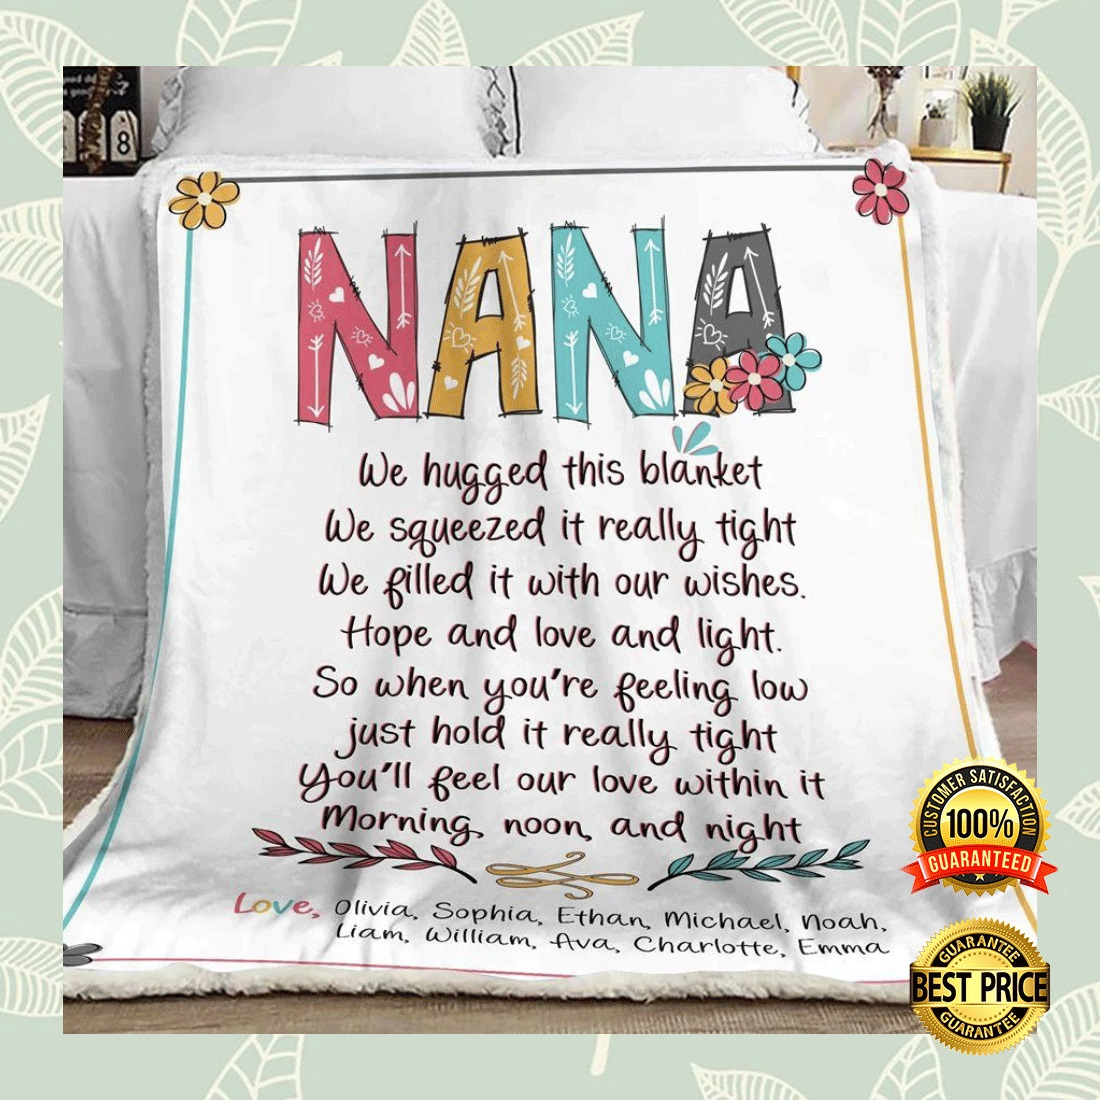 Personalized nana we hugged this blanket we squeezed it really tight blanket 6